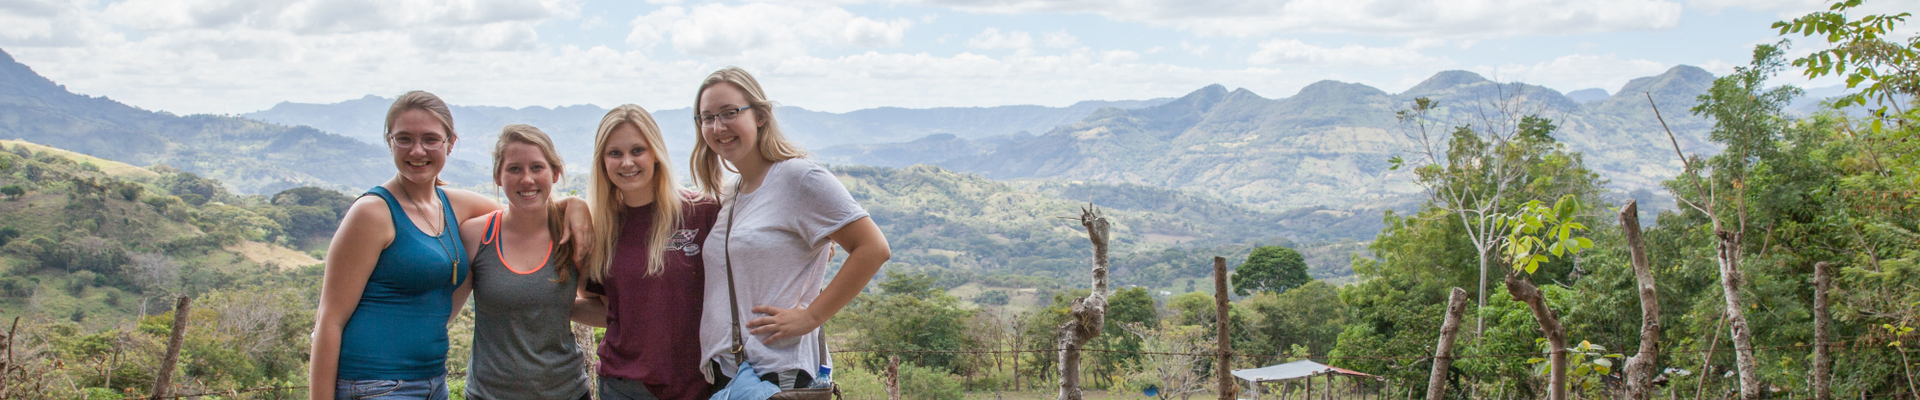 nicaragua immersion